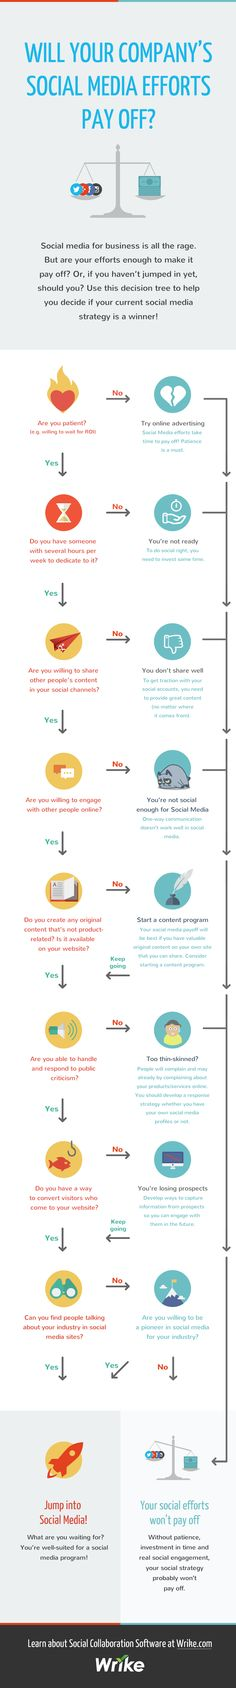 Will Your Company's Social Media Efforts Pay Off? #socialmedia #infographic